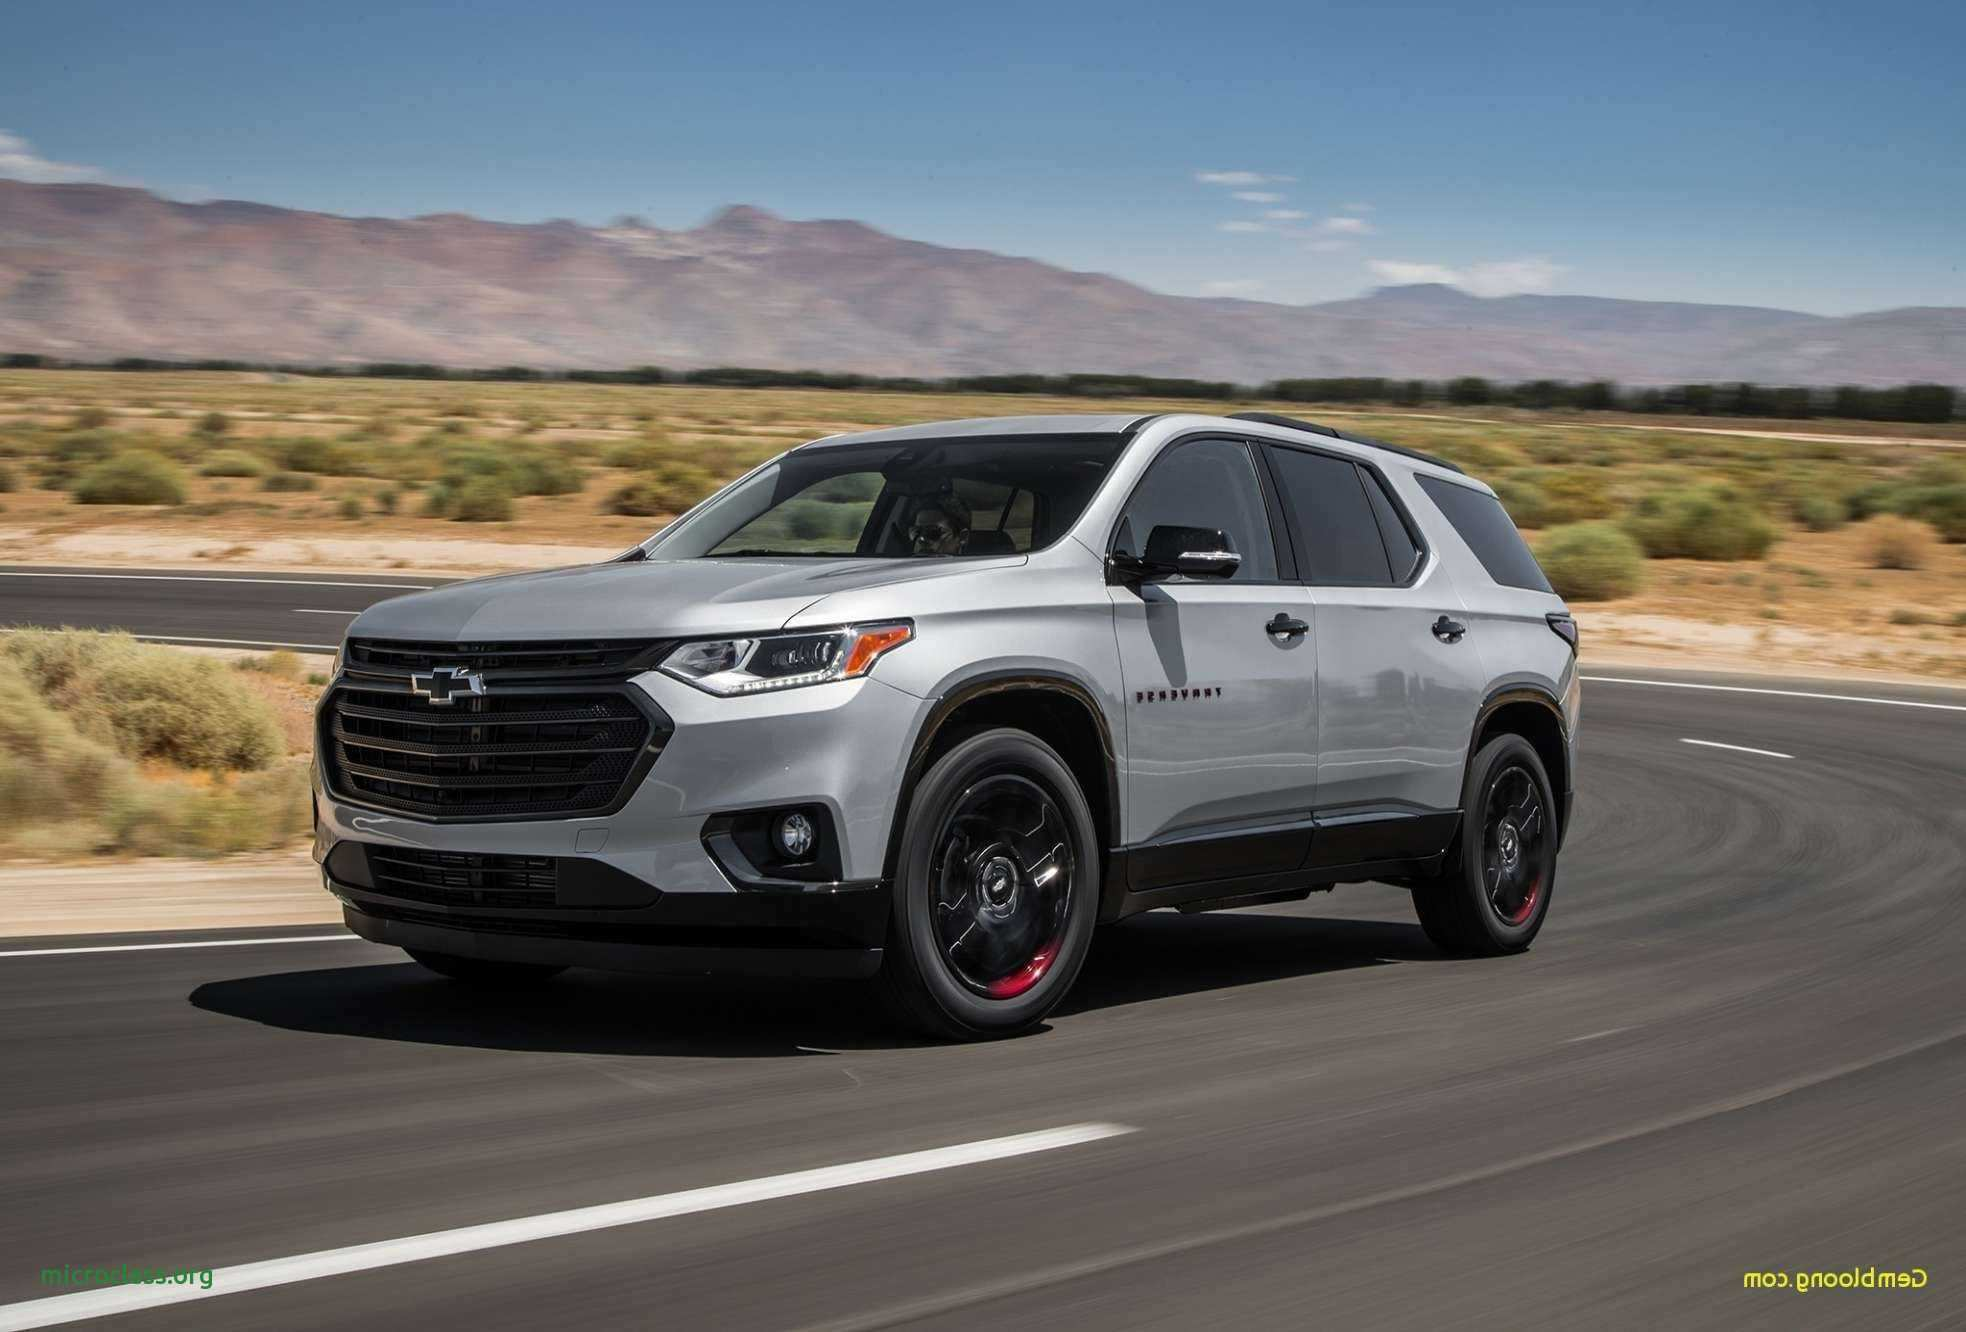 78 The 2019 Chevy Trailblazer Ss Photos with 2019 Chevy Trailblazer Ss